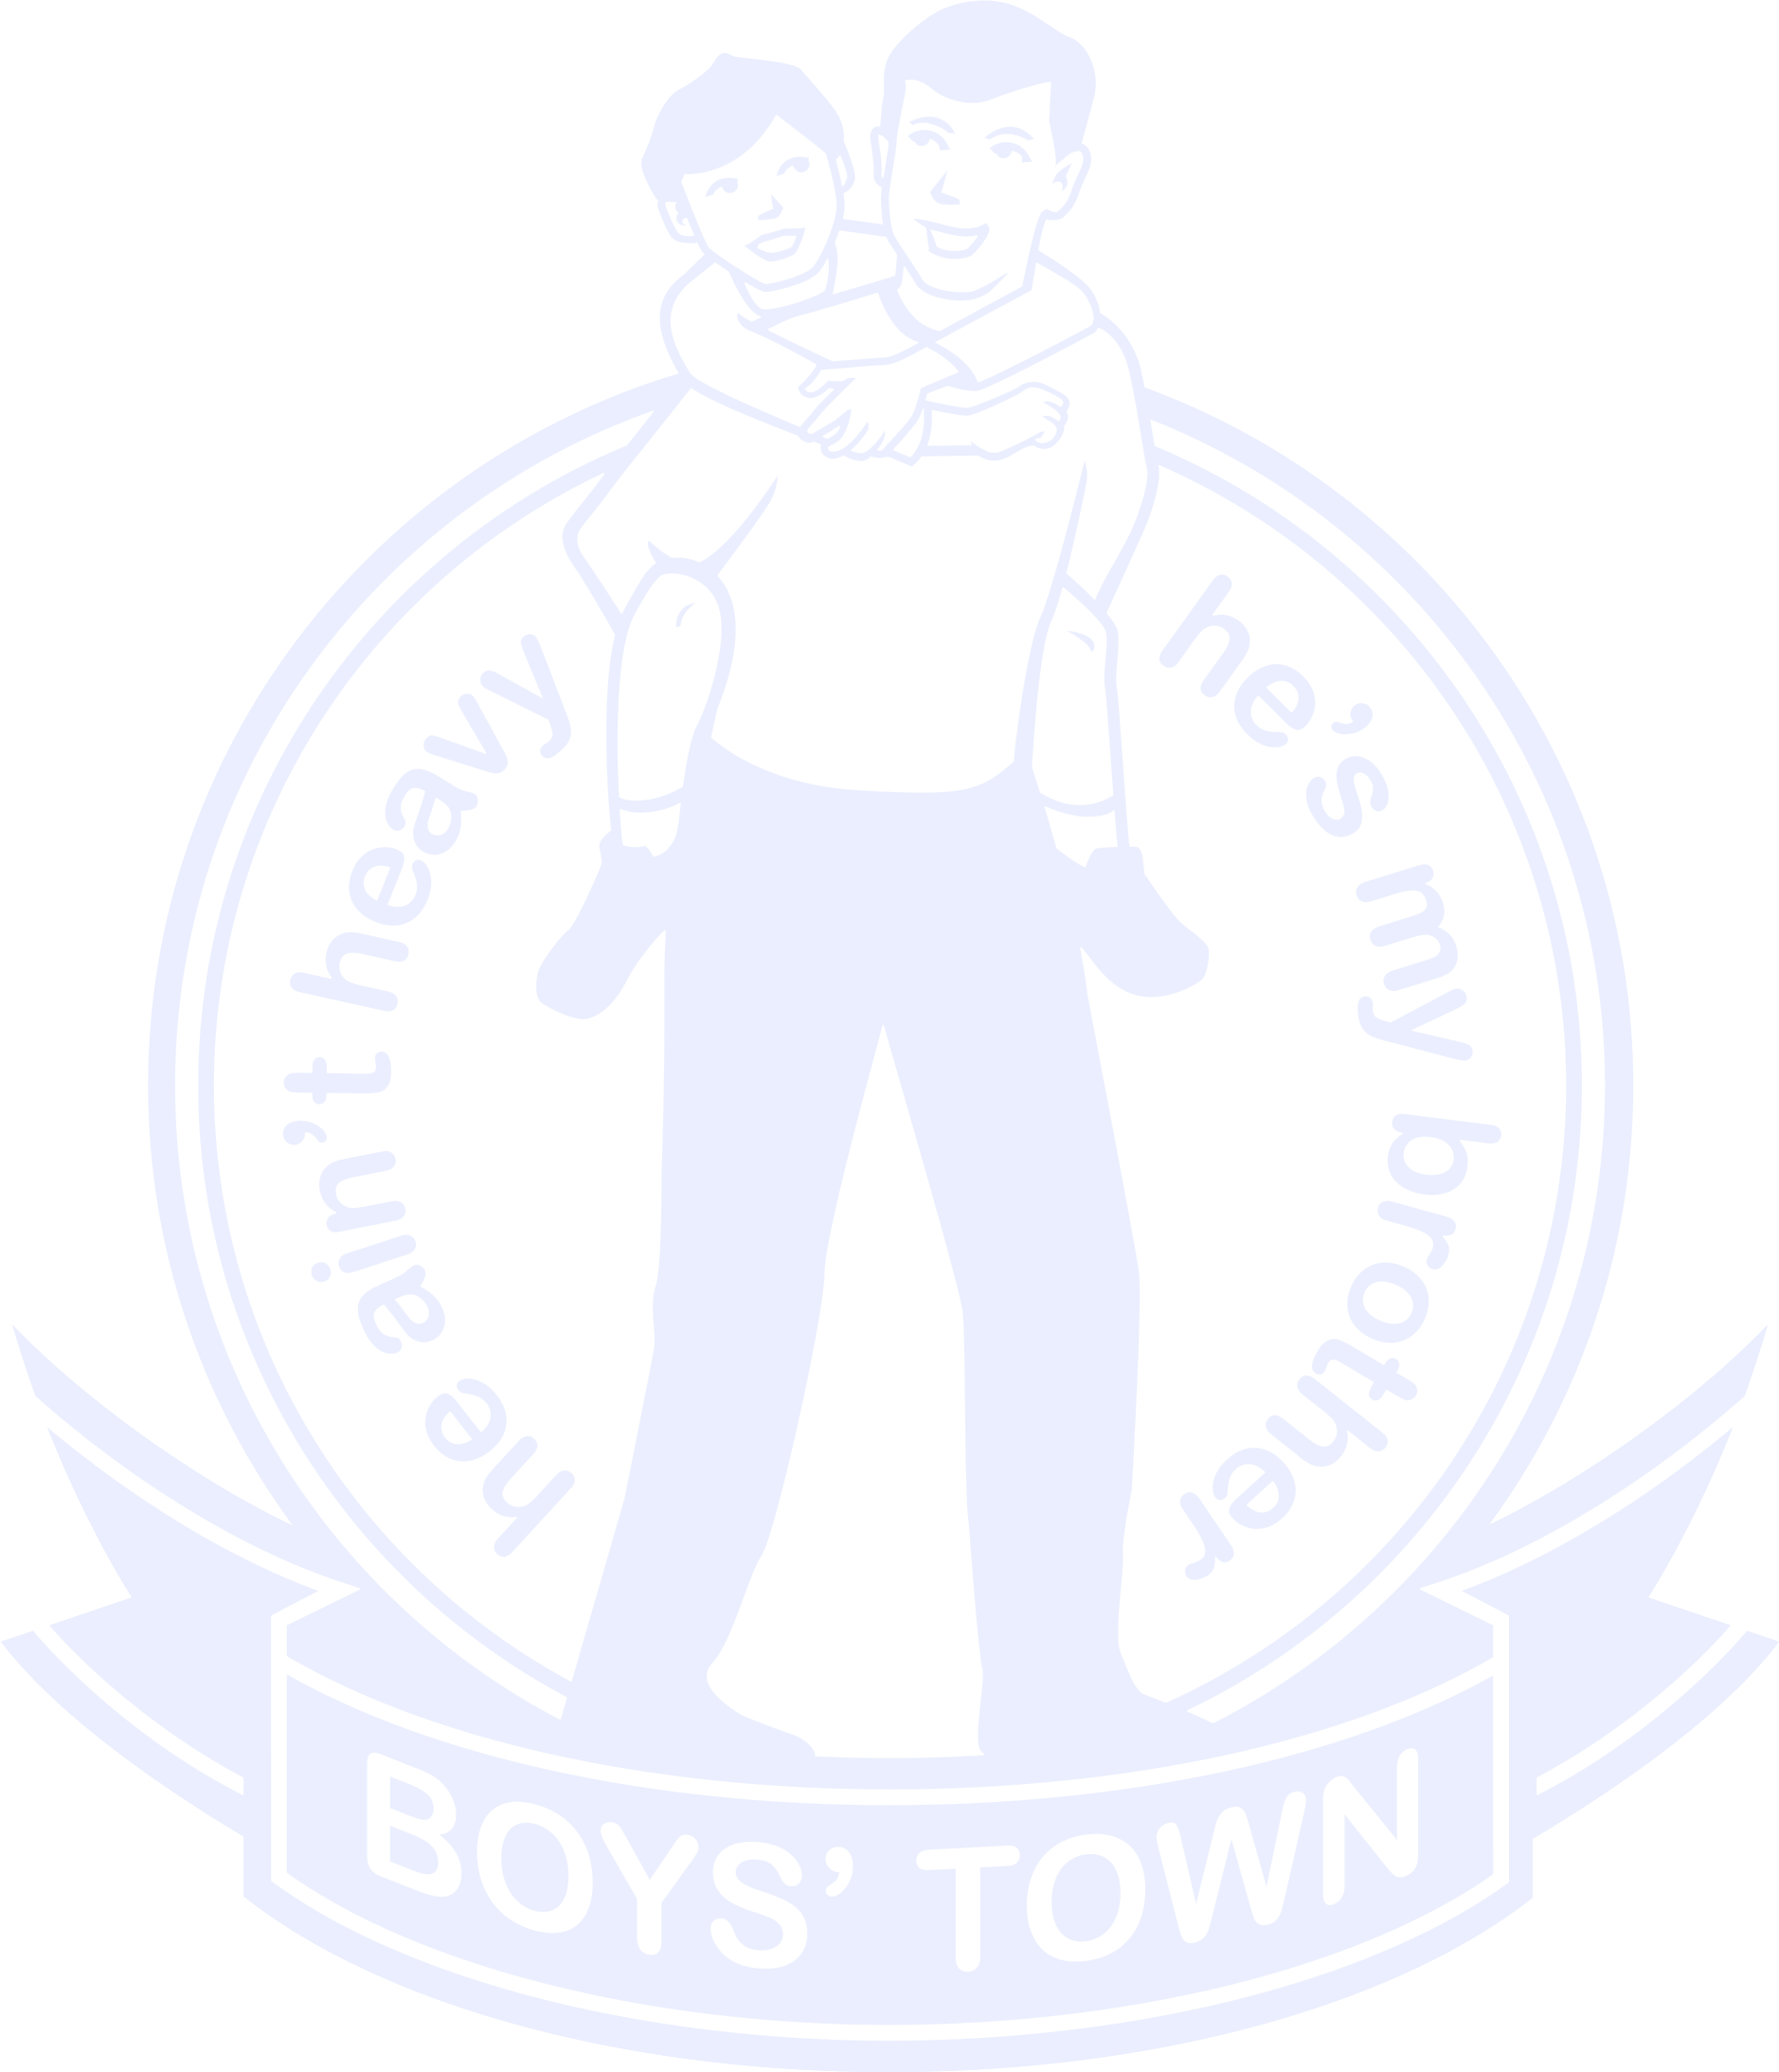 Boys Town Group